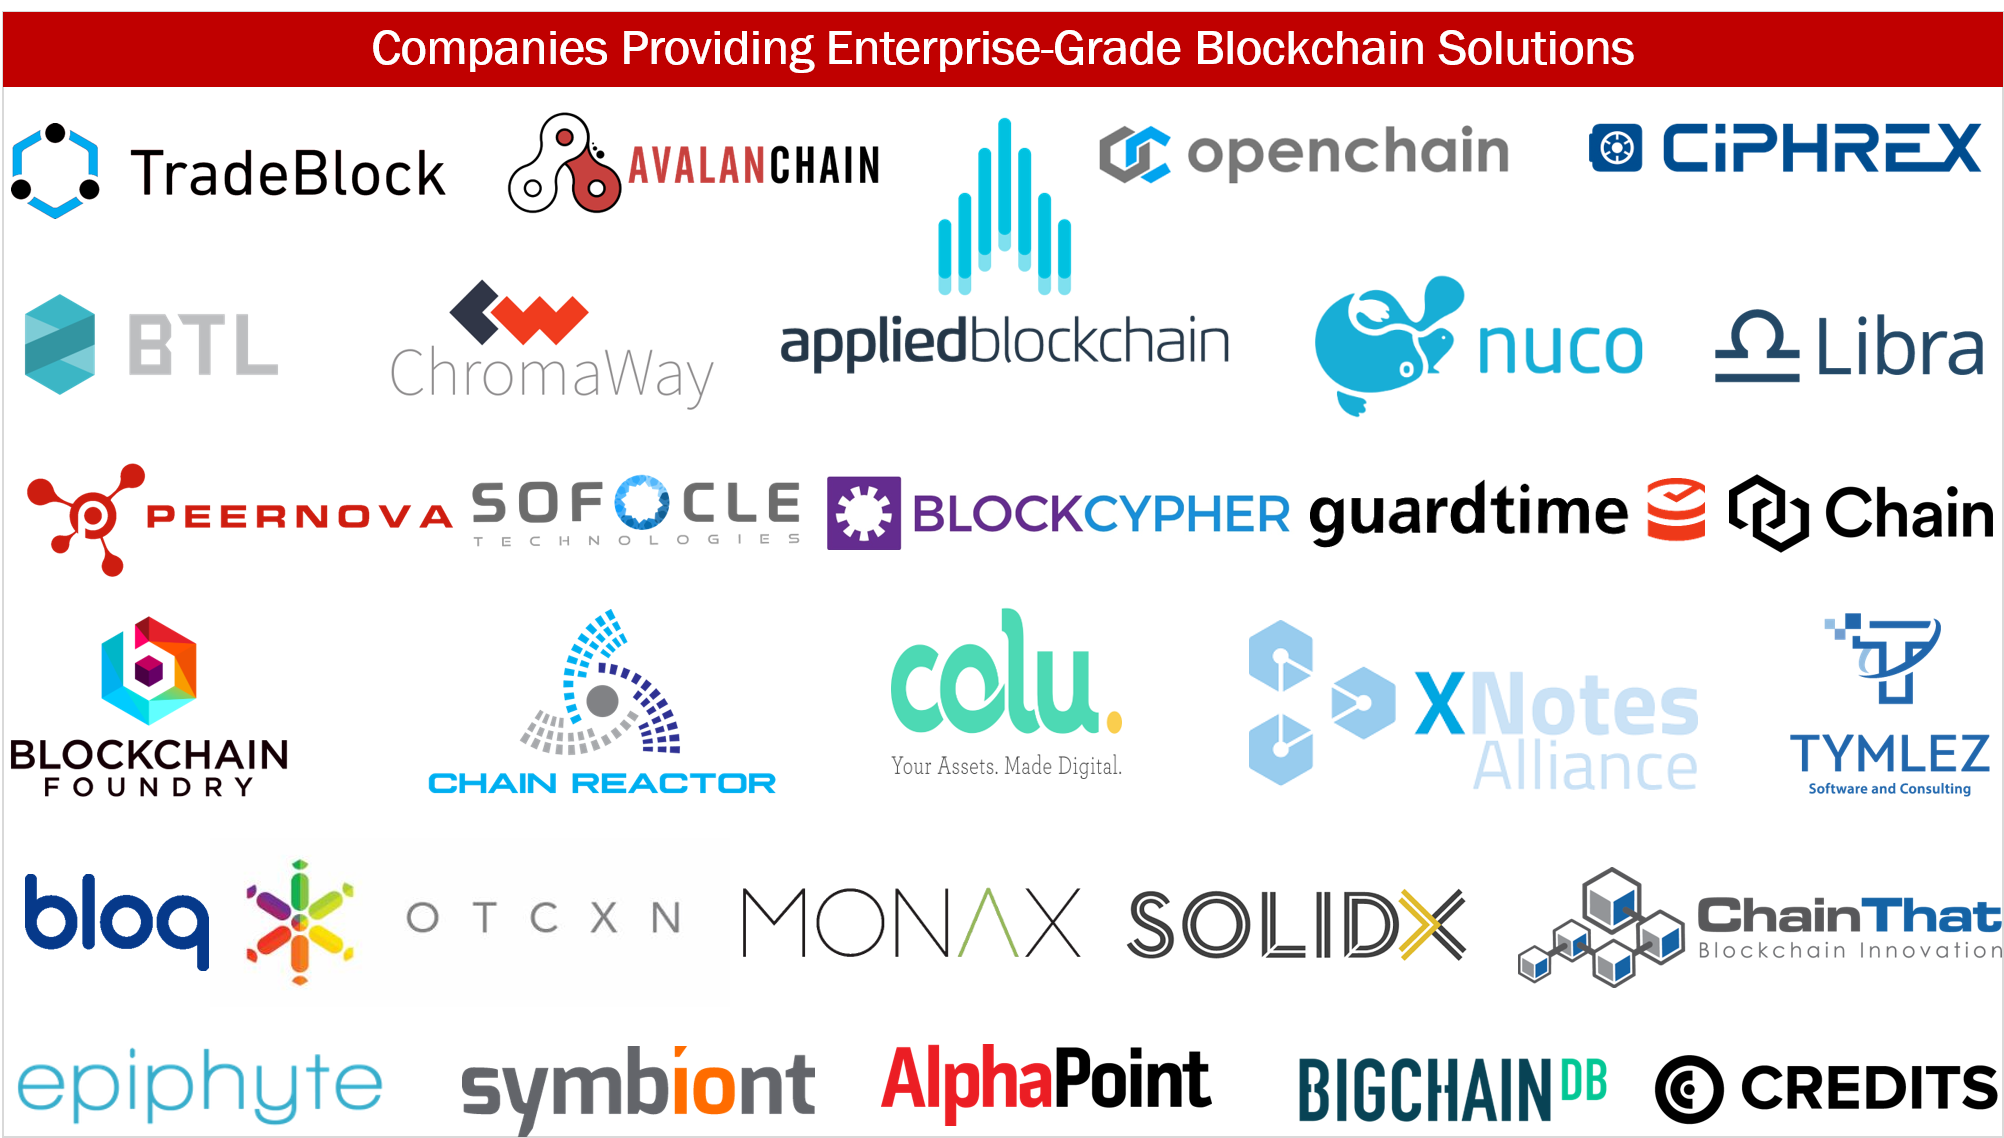 30 Companies Providing Enterprise-Grade Blockchain Solutions